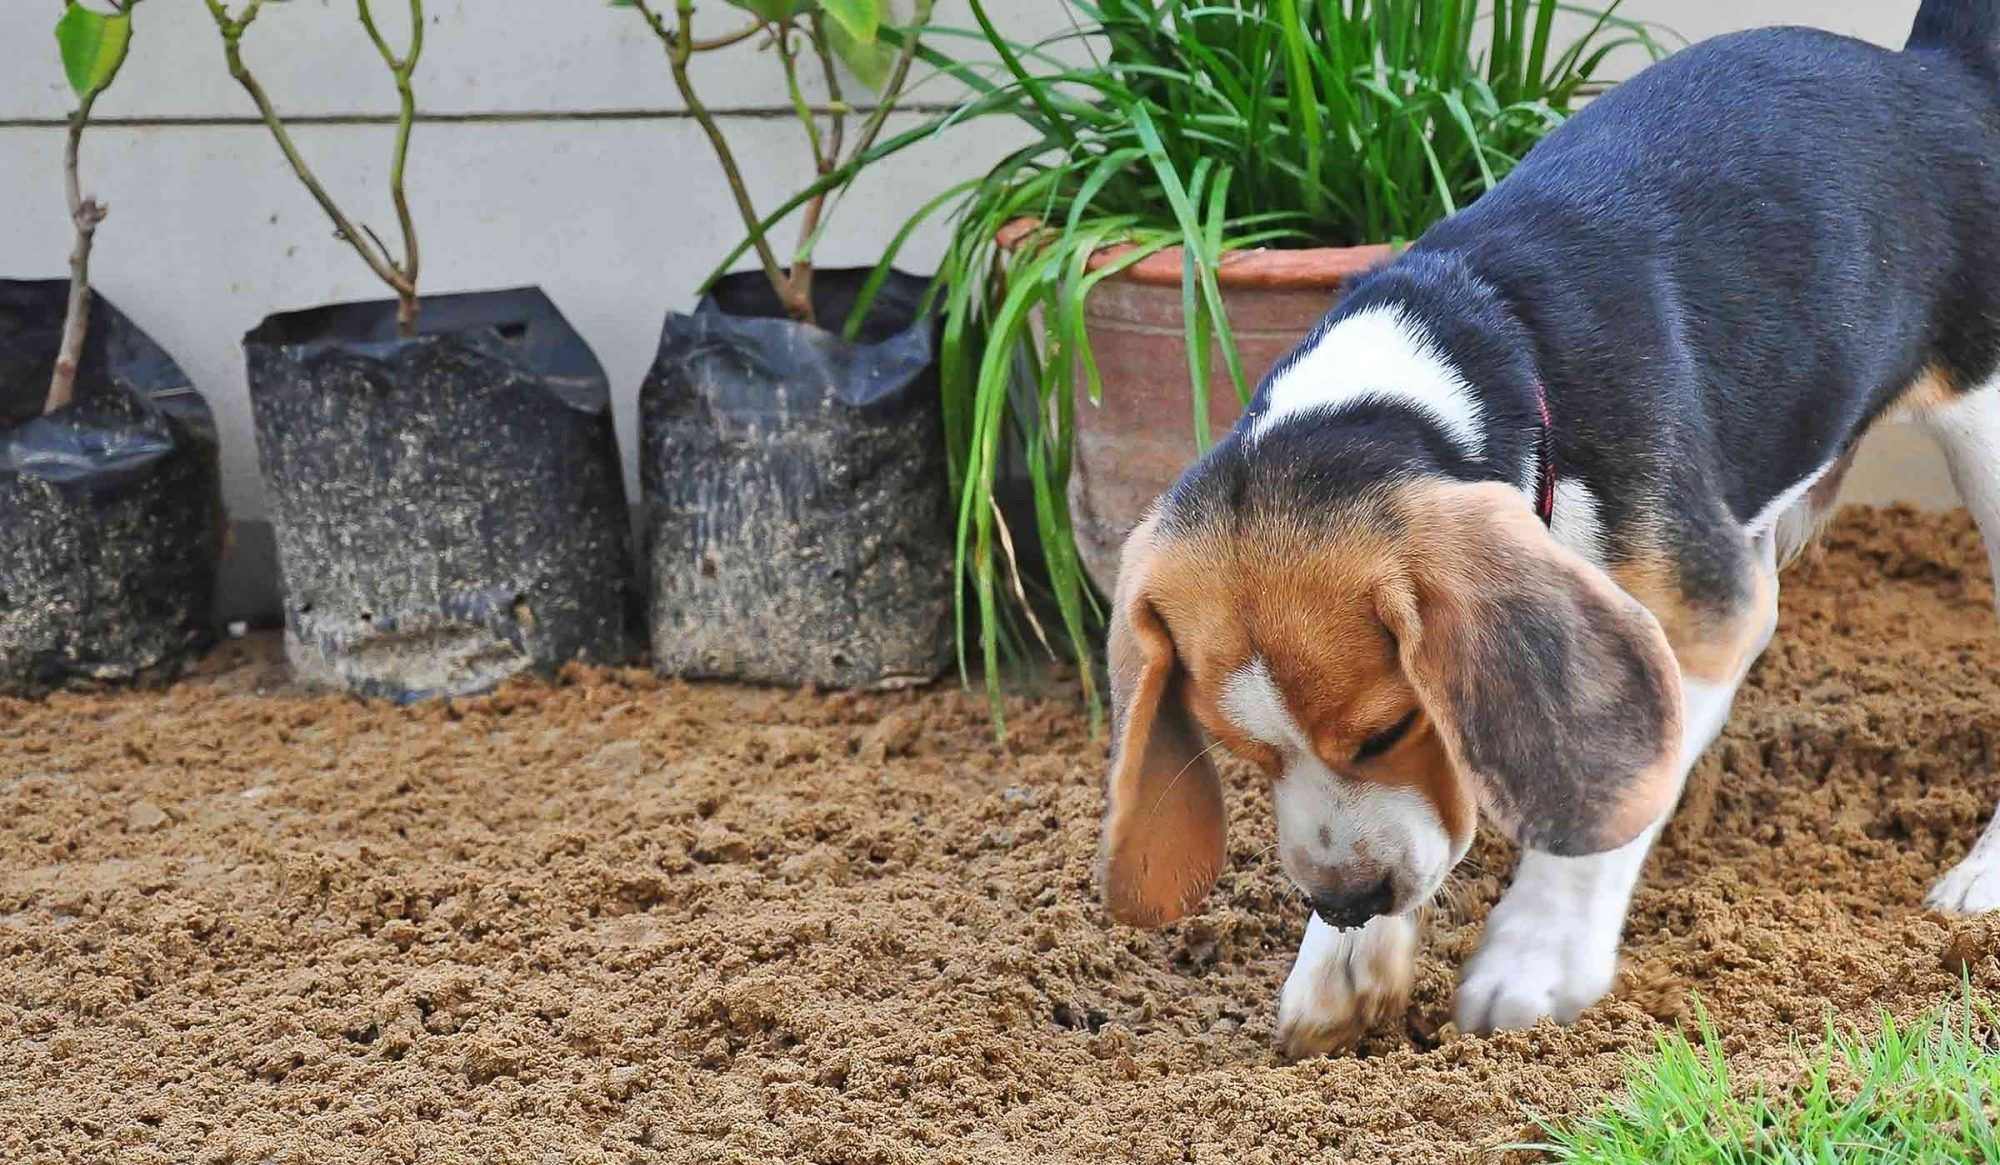 Dogs Burying Toys: Why Your Pet Hides Favorite Toys and Treats